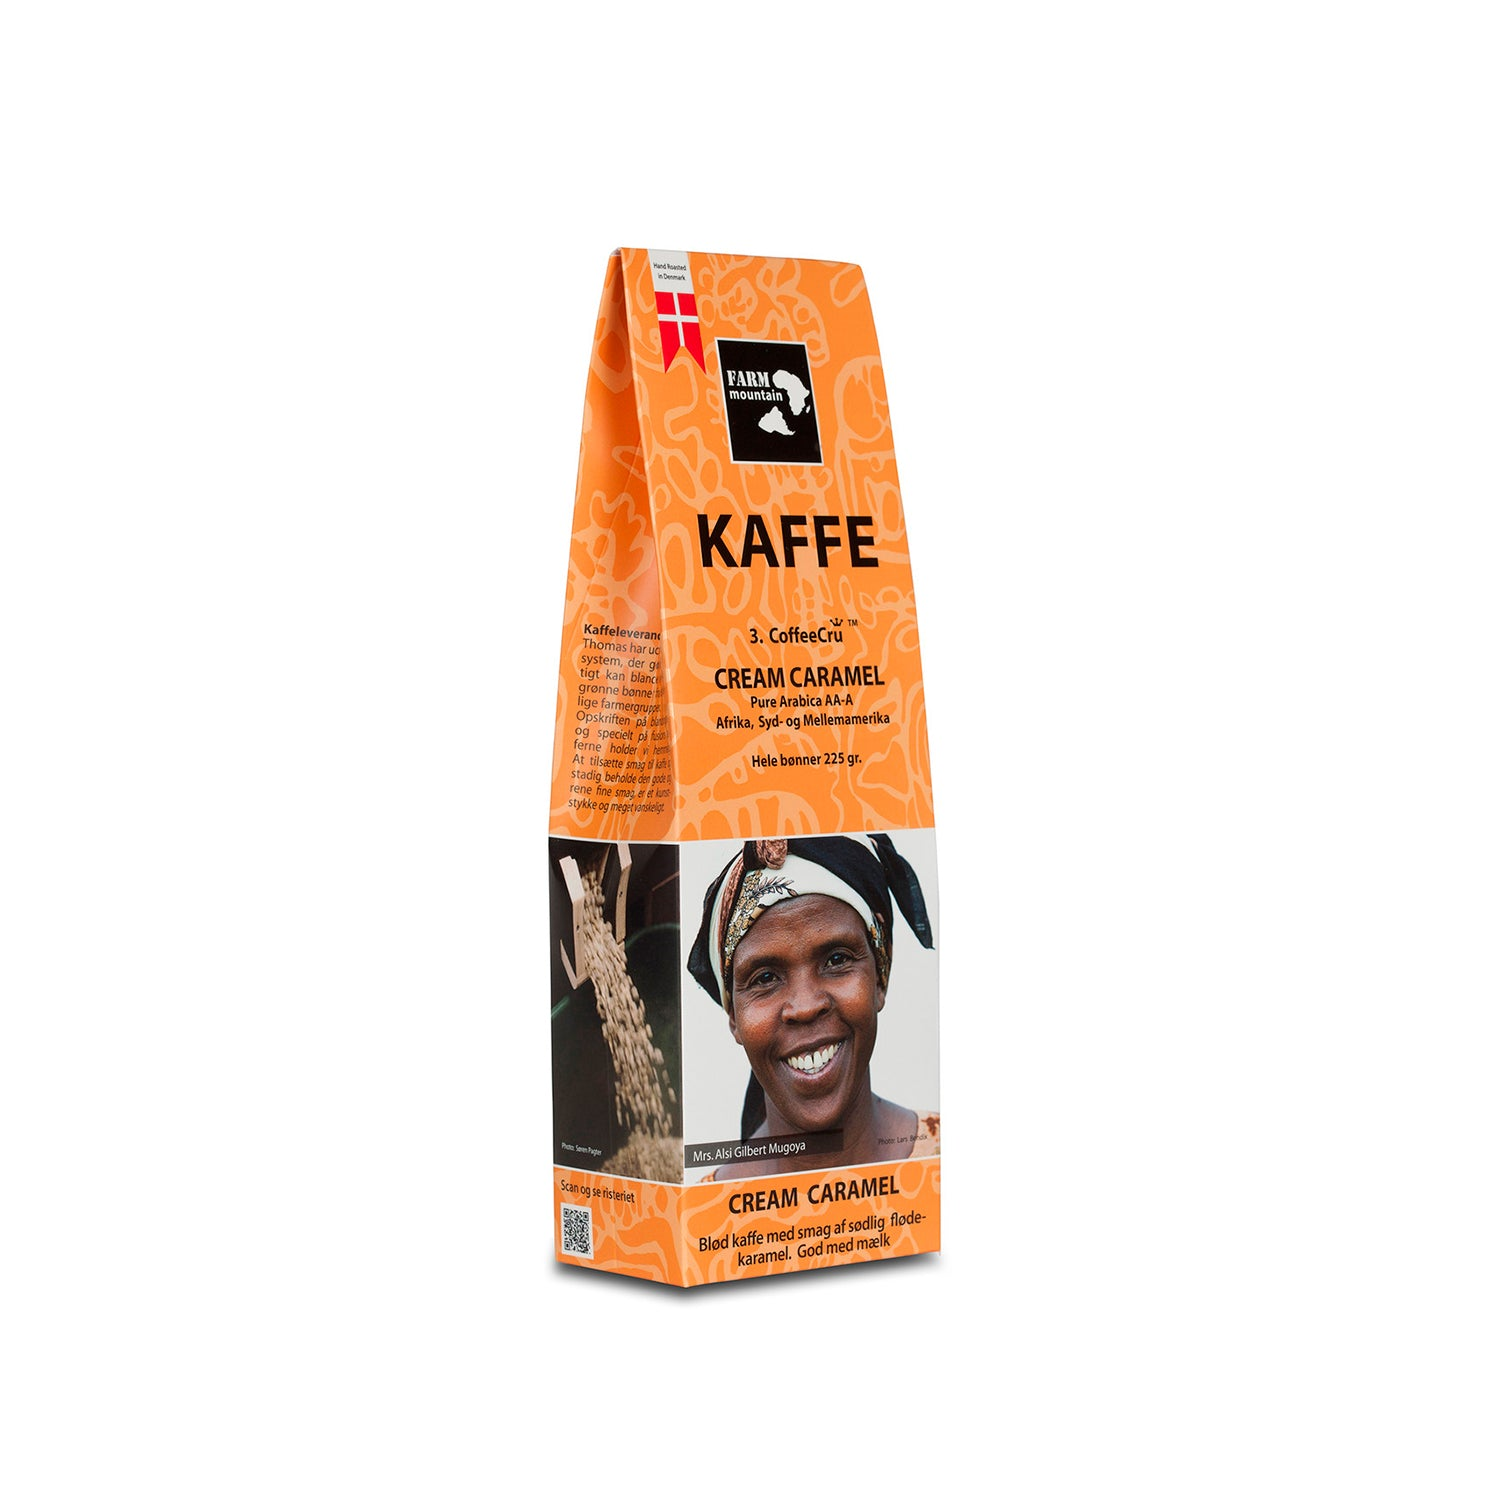 Farm Mountain Cream Caramel - Hele kaffebønner, 225 grams pose - Netnaturshop